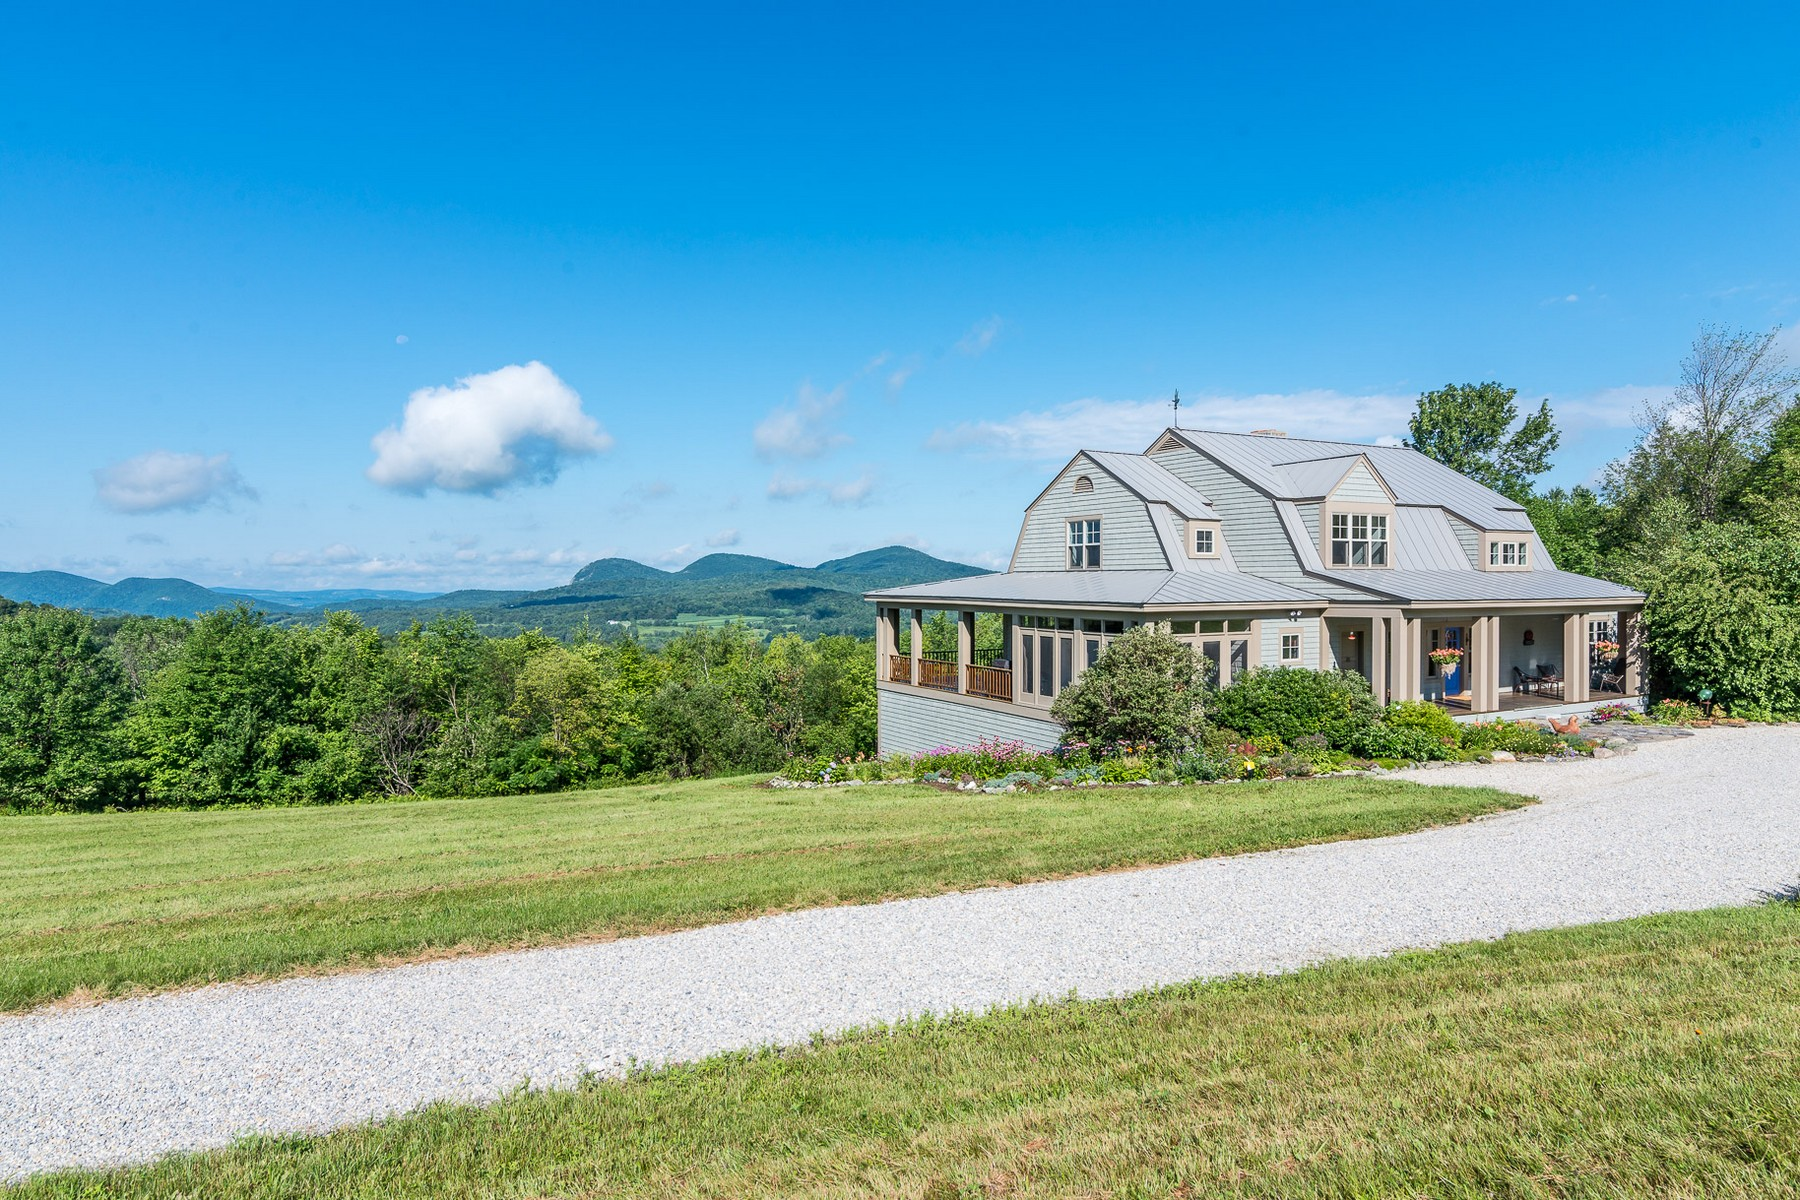 Single Family Home for Sale at 1638 Lilly Hill Rd, Danby Danby, Vermont, 05761 United States